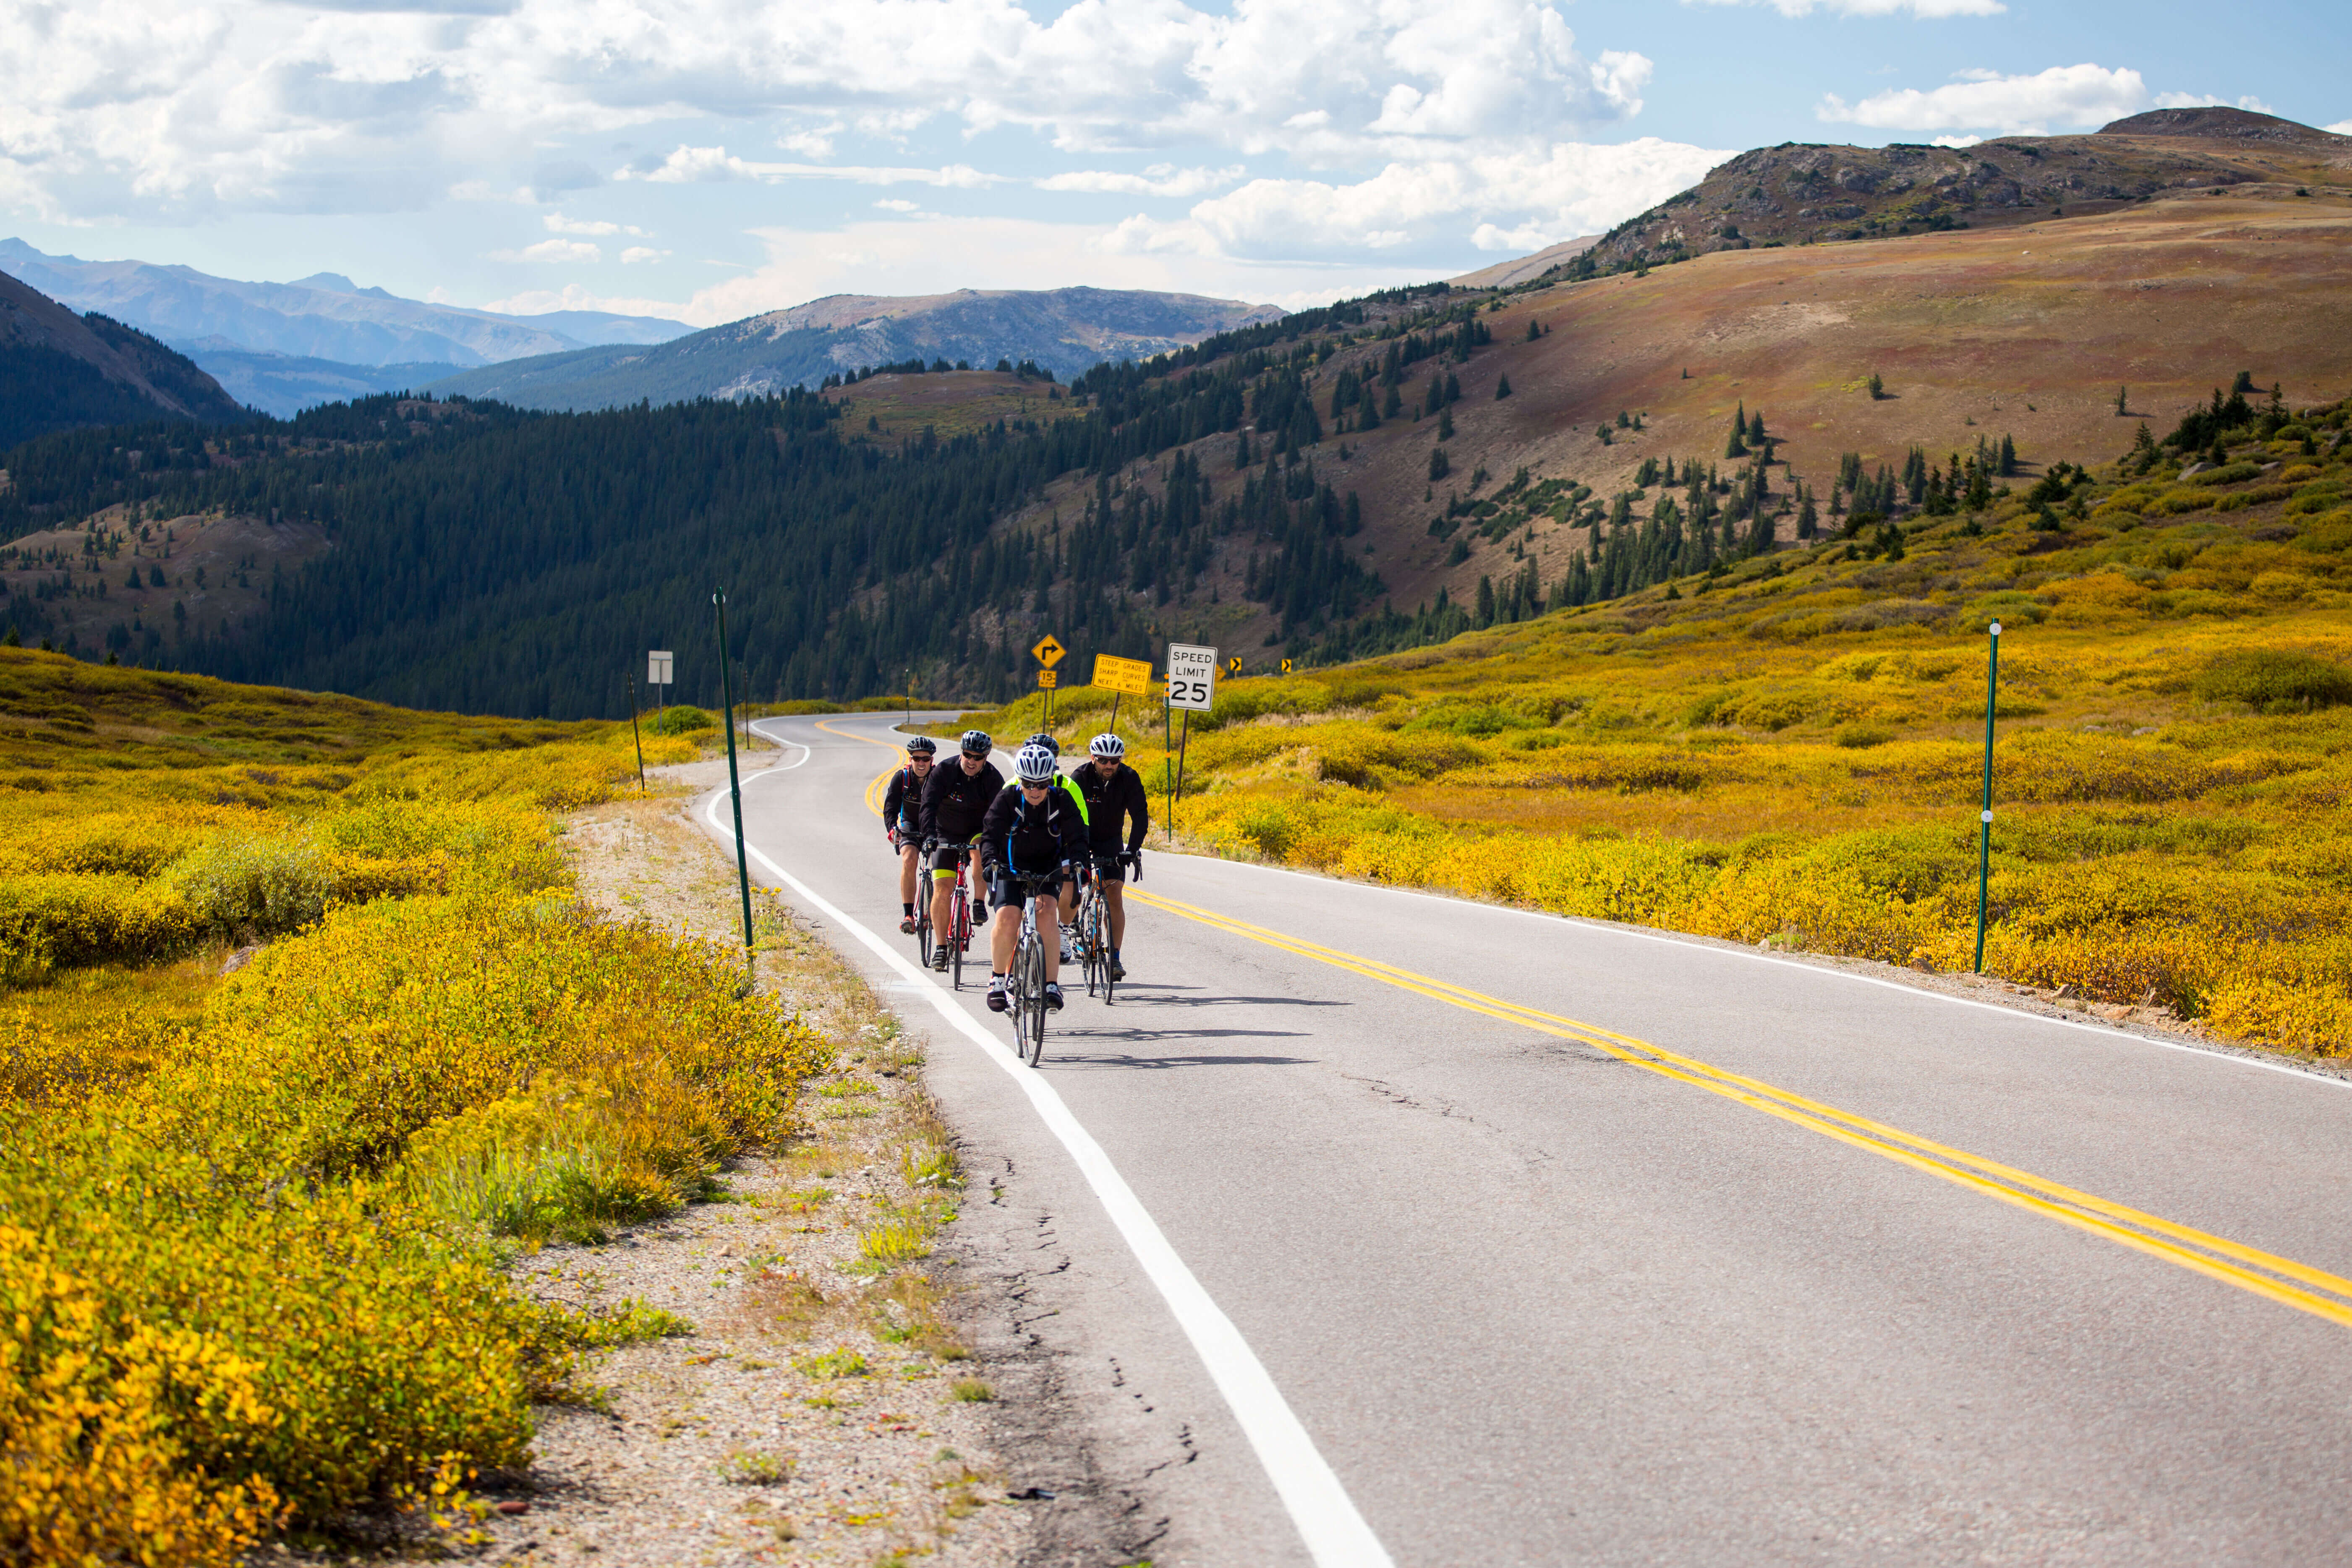 Join us at Elephant Rock as we ride to eliminate childhood hunger.